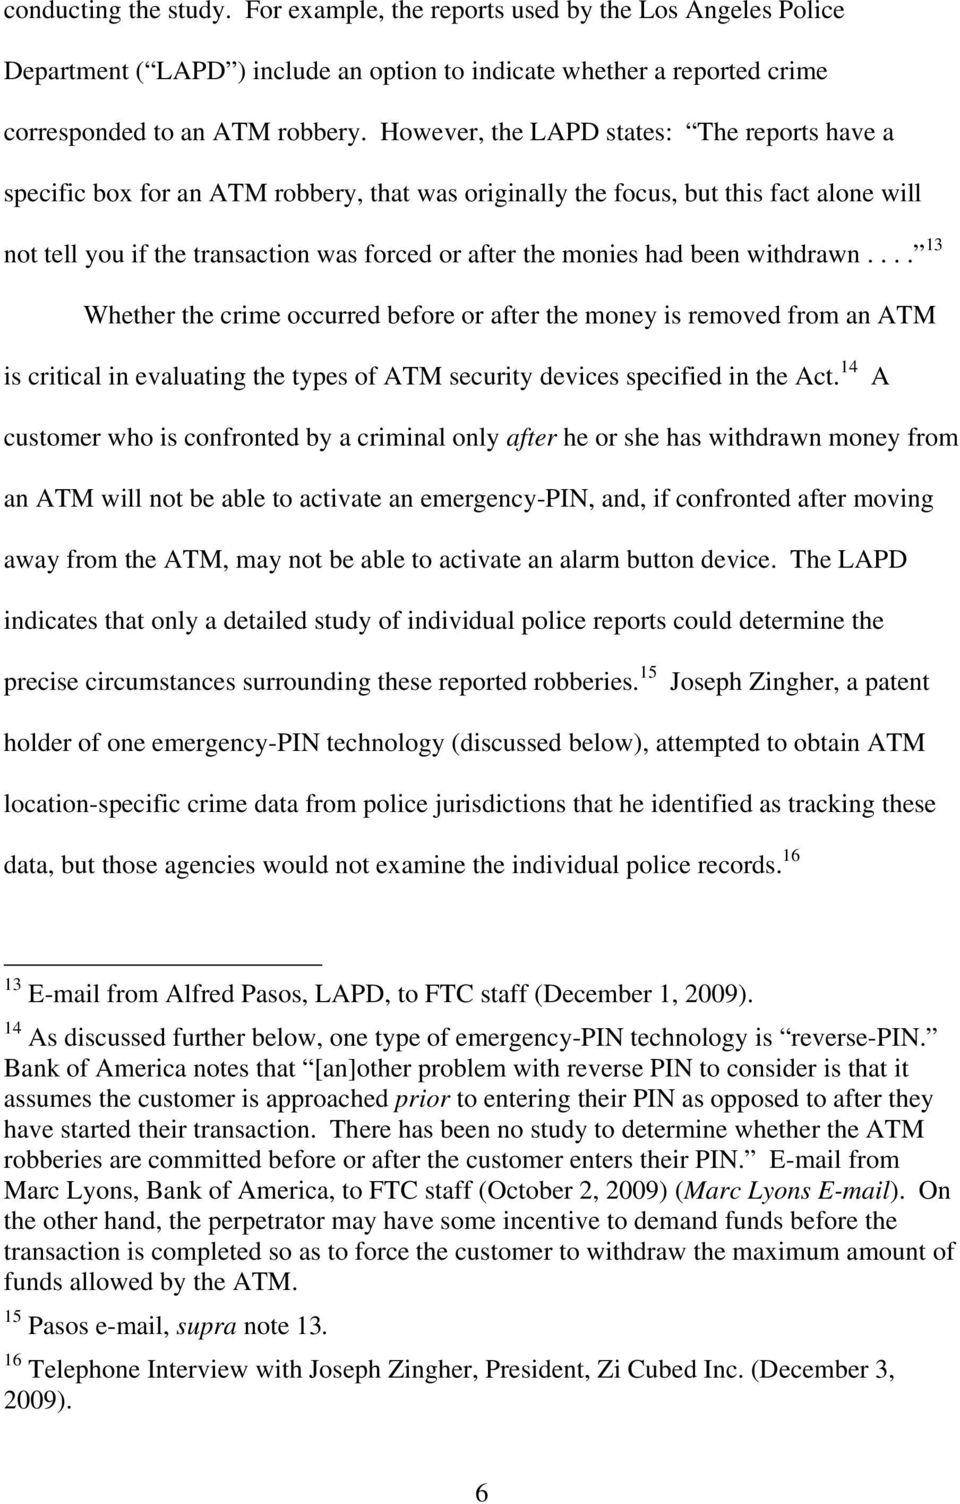 had been withdrawn.... 13 Whether the crime occurred before or after the money is removed from an ATM is critical in evaluating the types of ATM security devices specified in the Act.